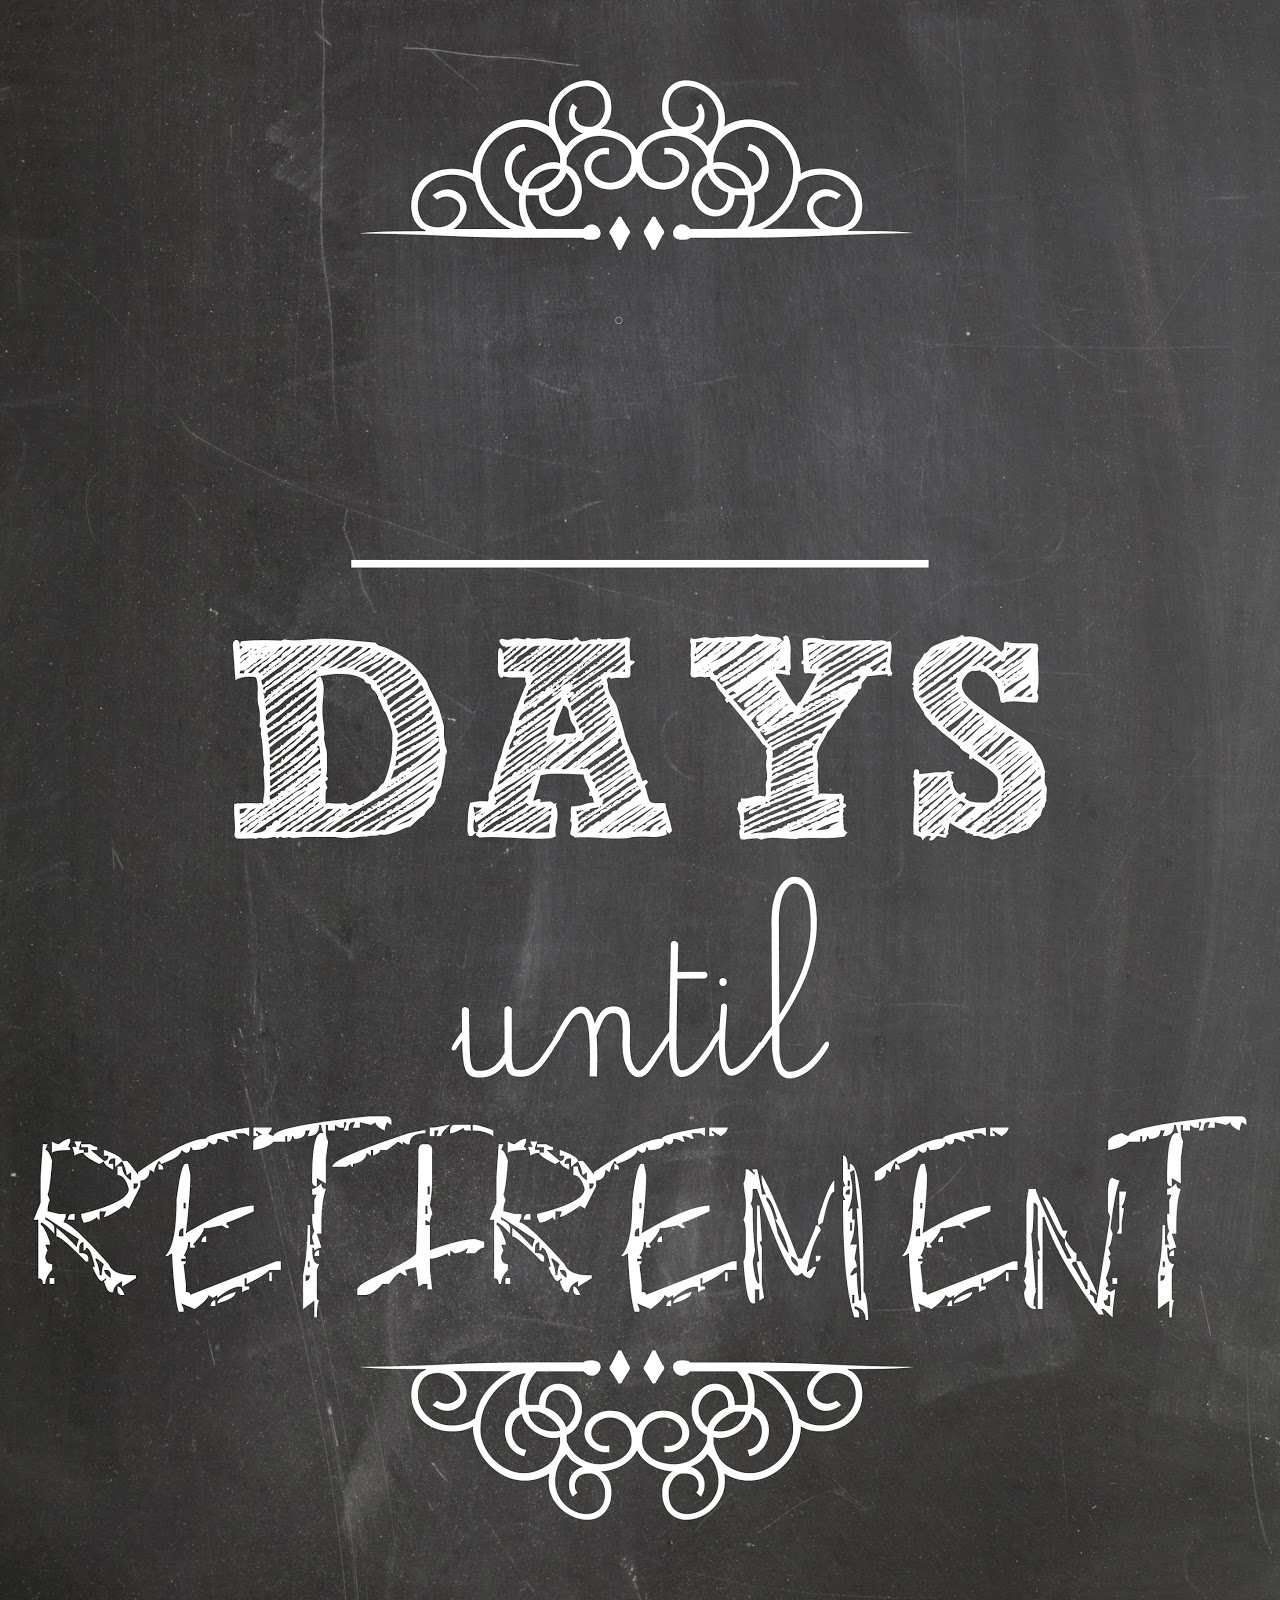 Countdown Days until Retirement